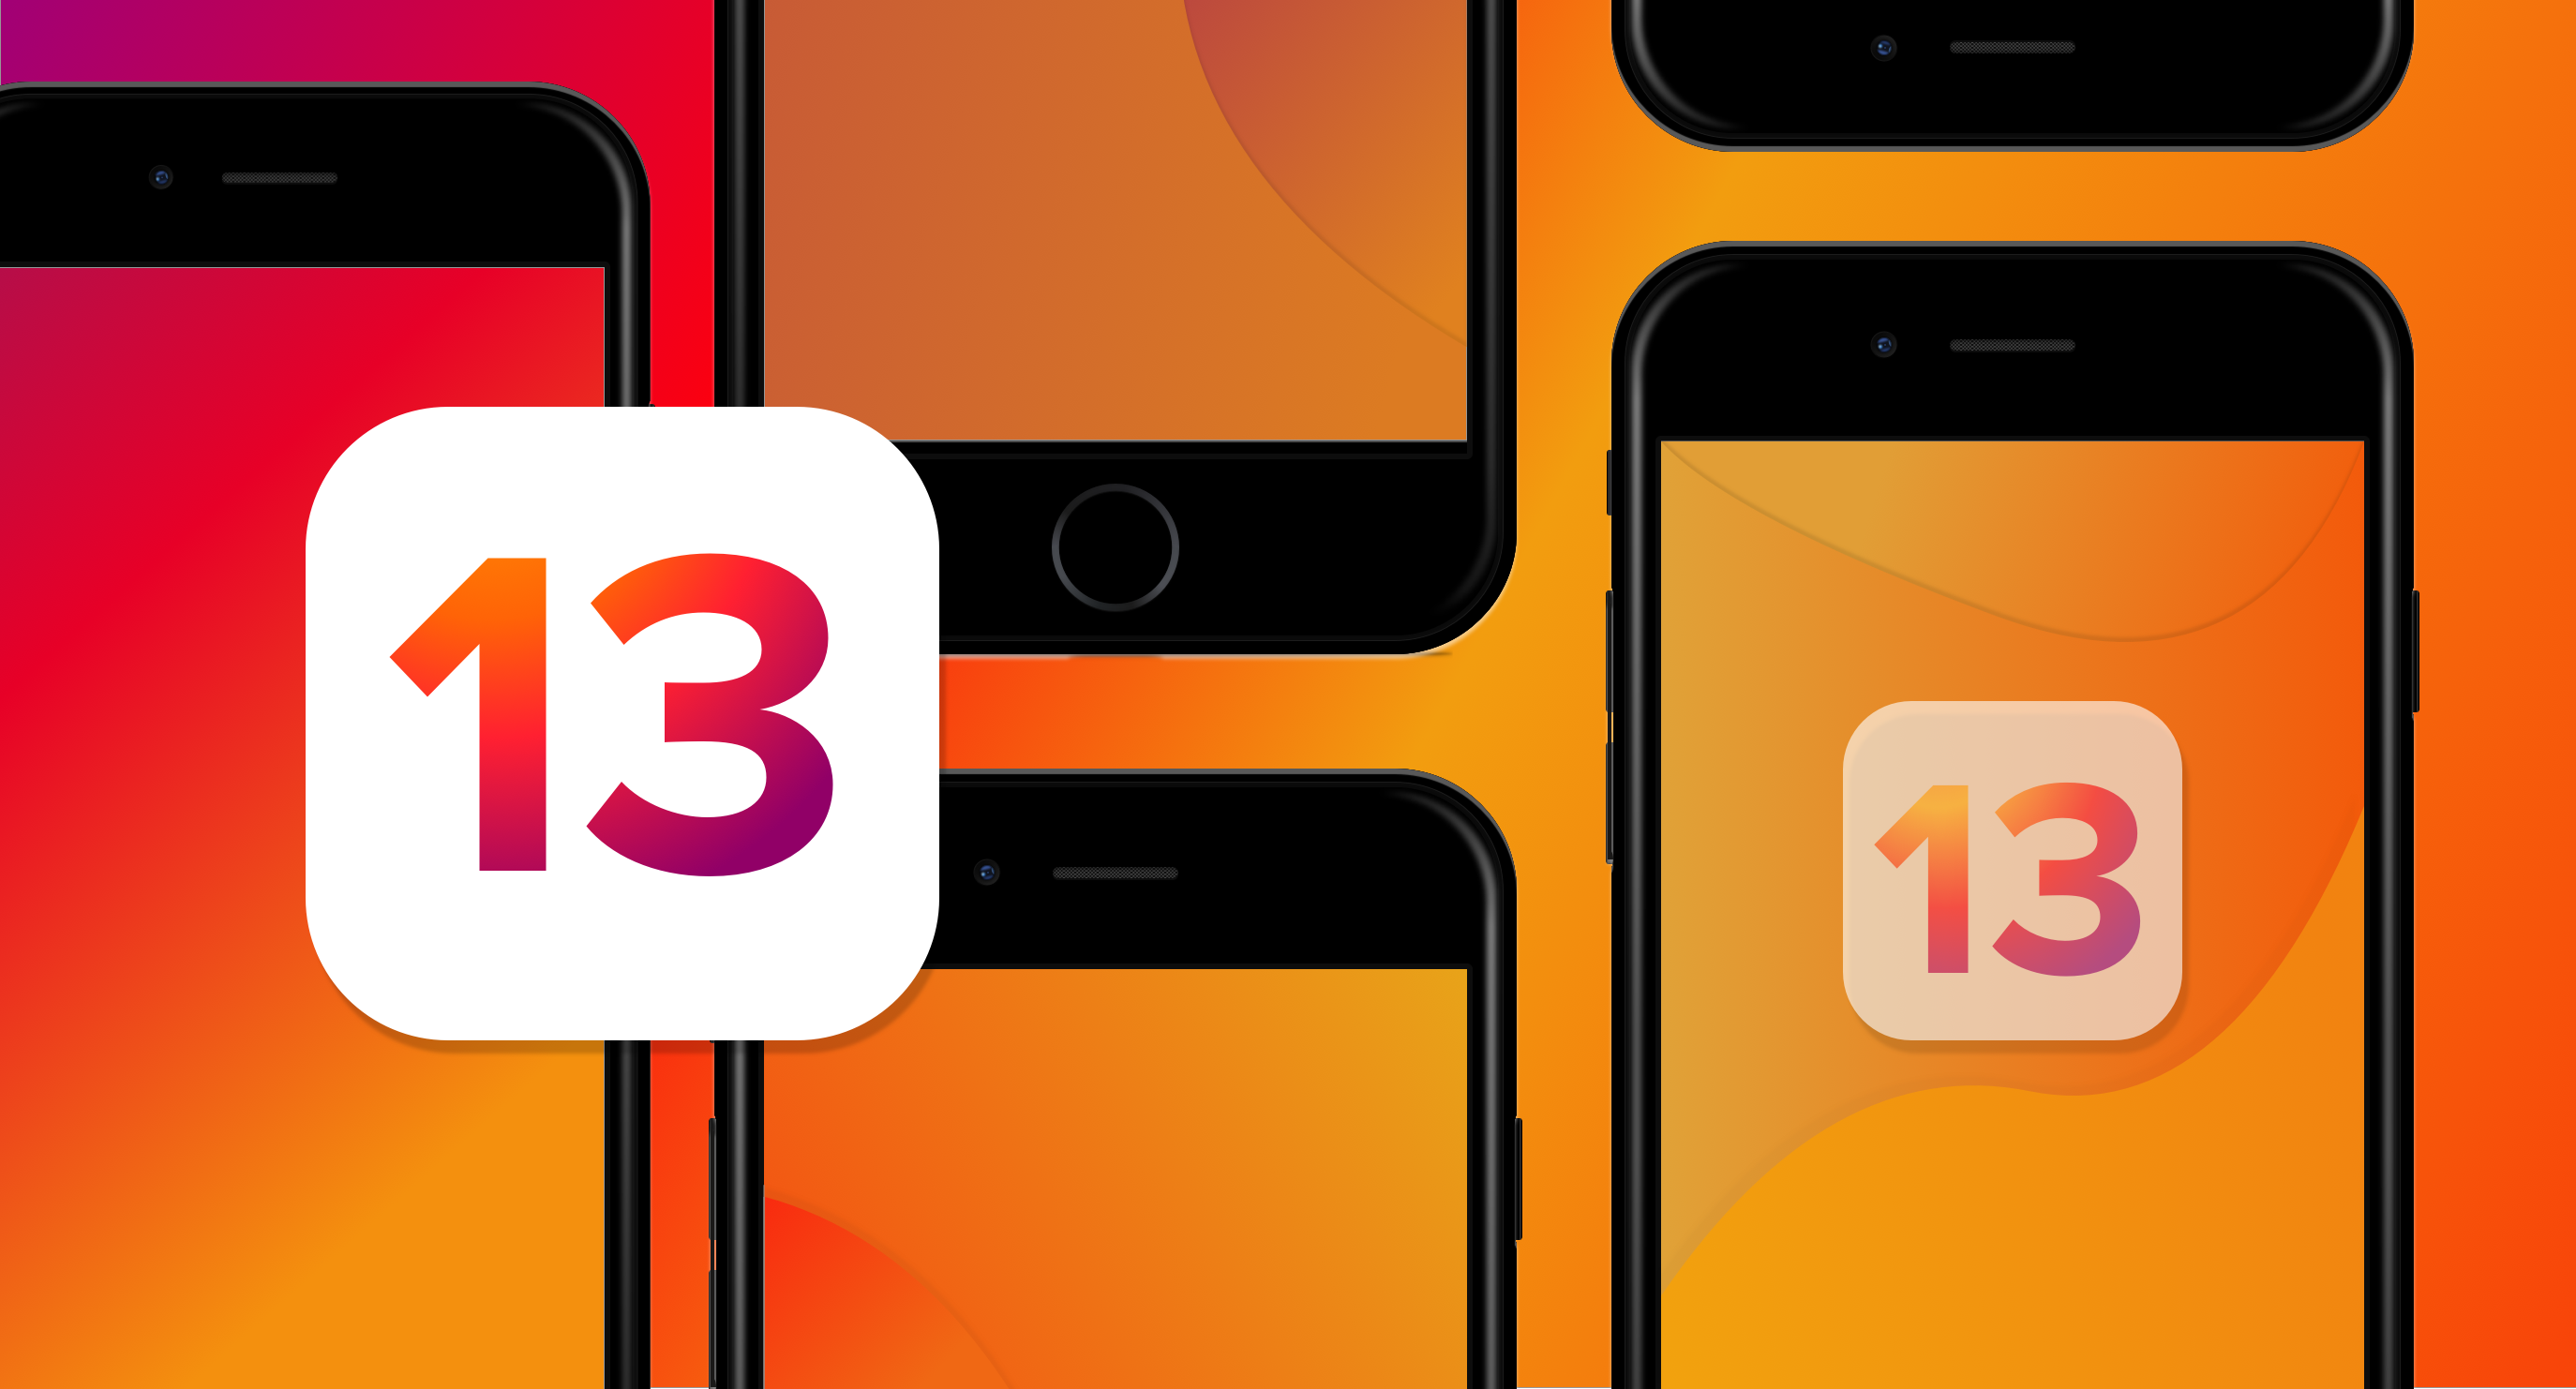 Mobile App Developers Rejoice: iOS 13 is Your Chance to Innovate